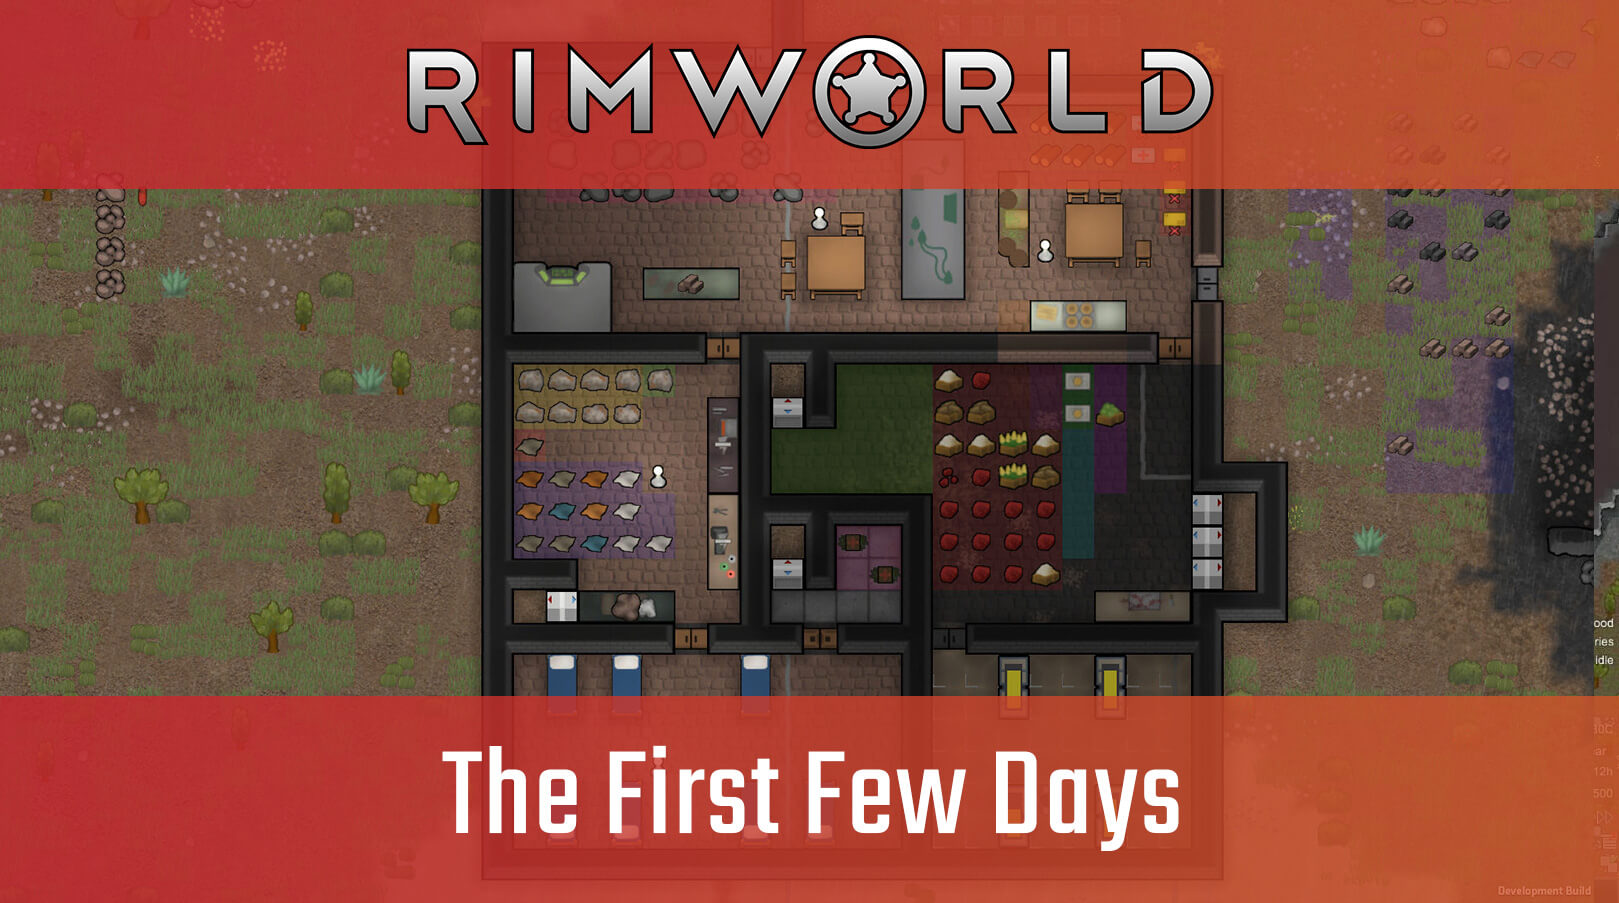 Your First Few Days - Rimworld Guide - Big Boss Battle (B3)